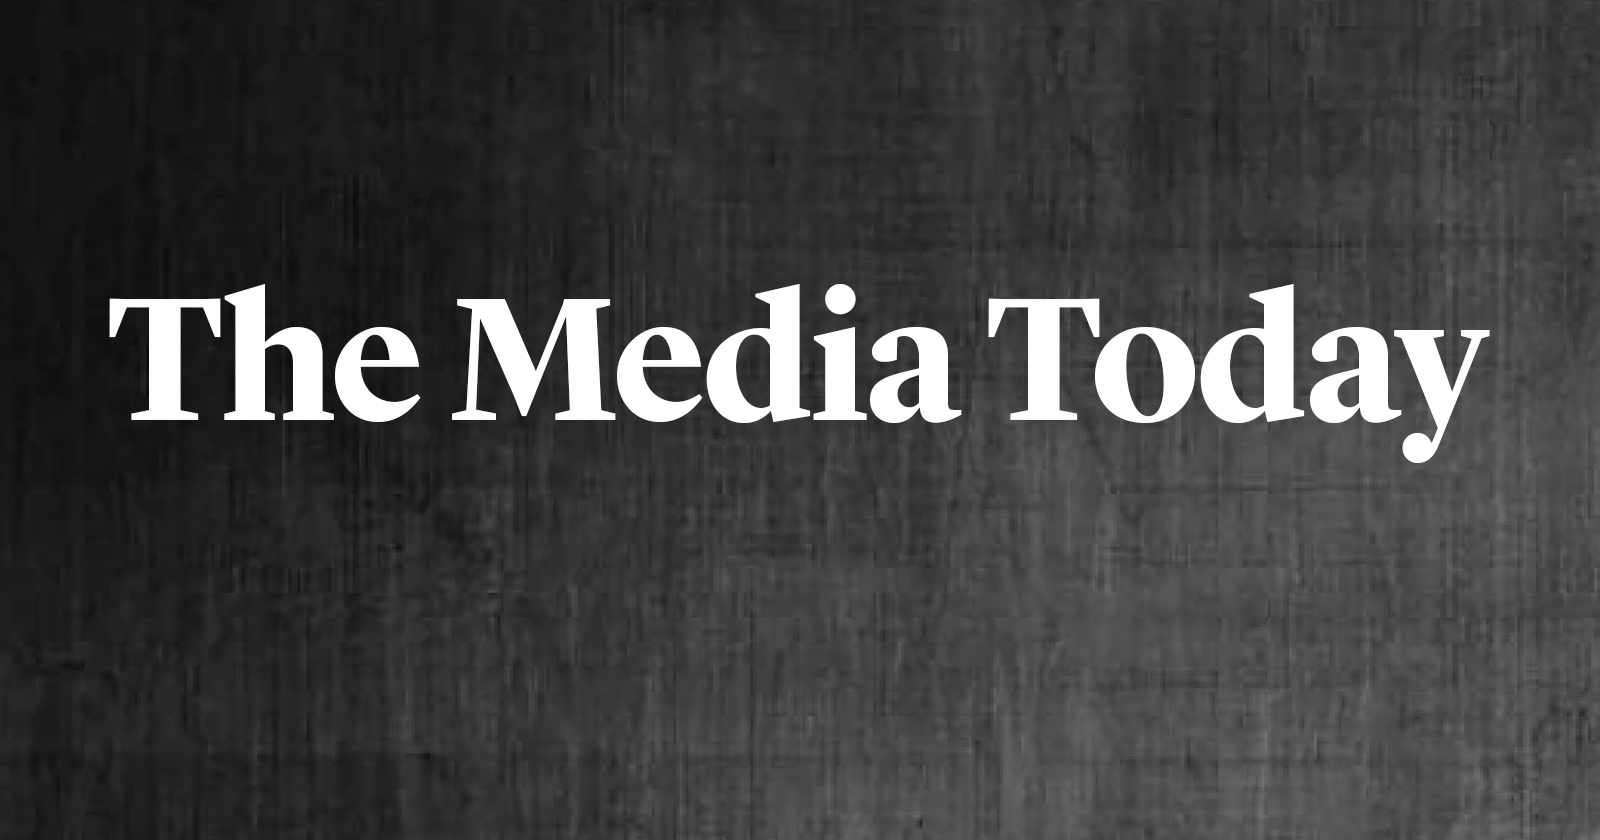 The ongoing fight against racism in newsrooms